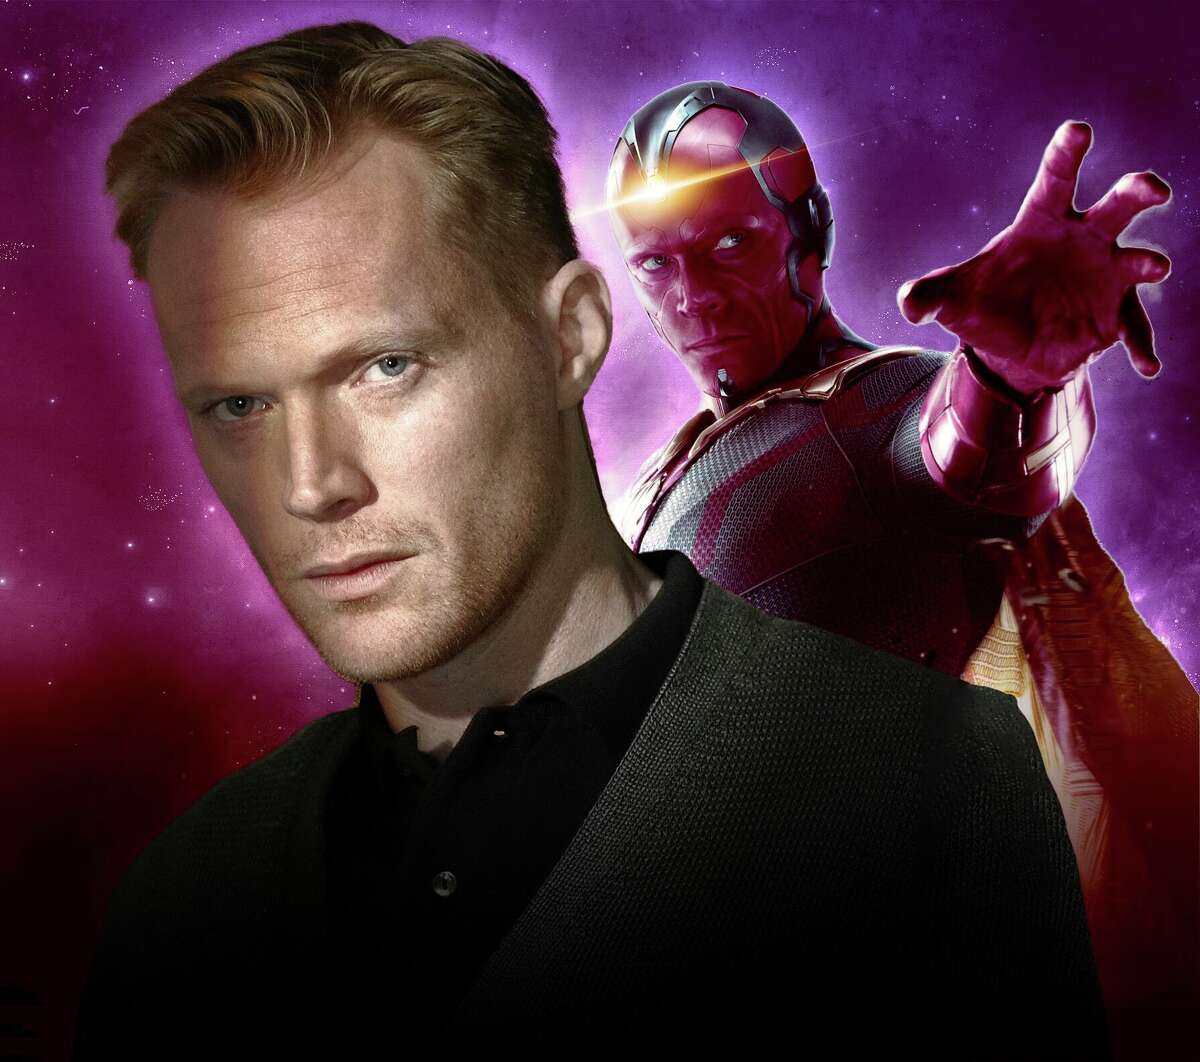 Paul Bettany, who plays